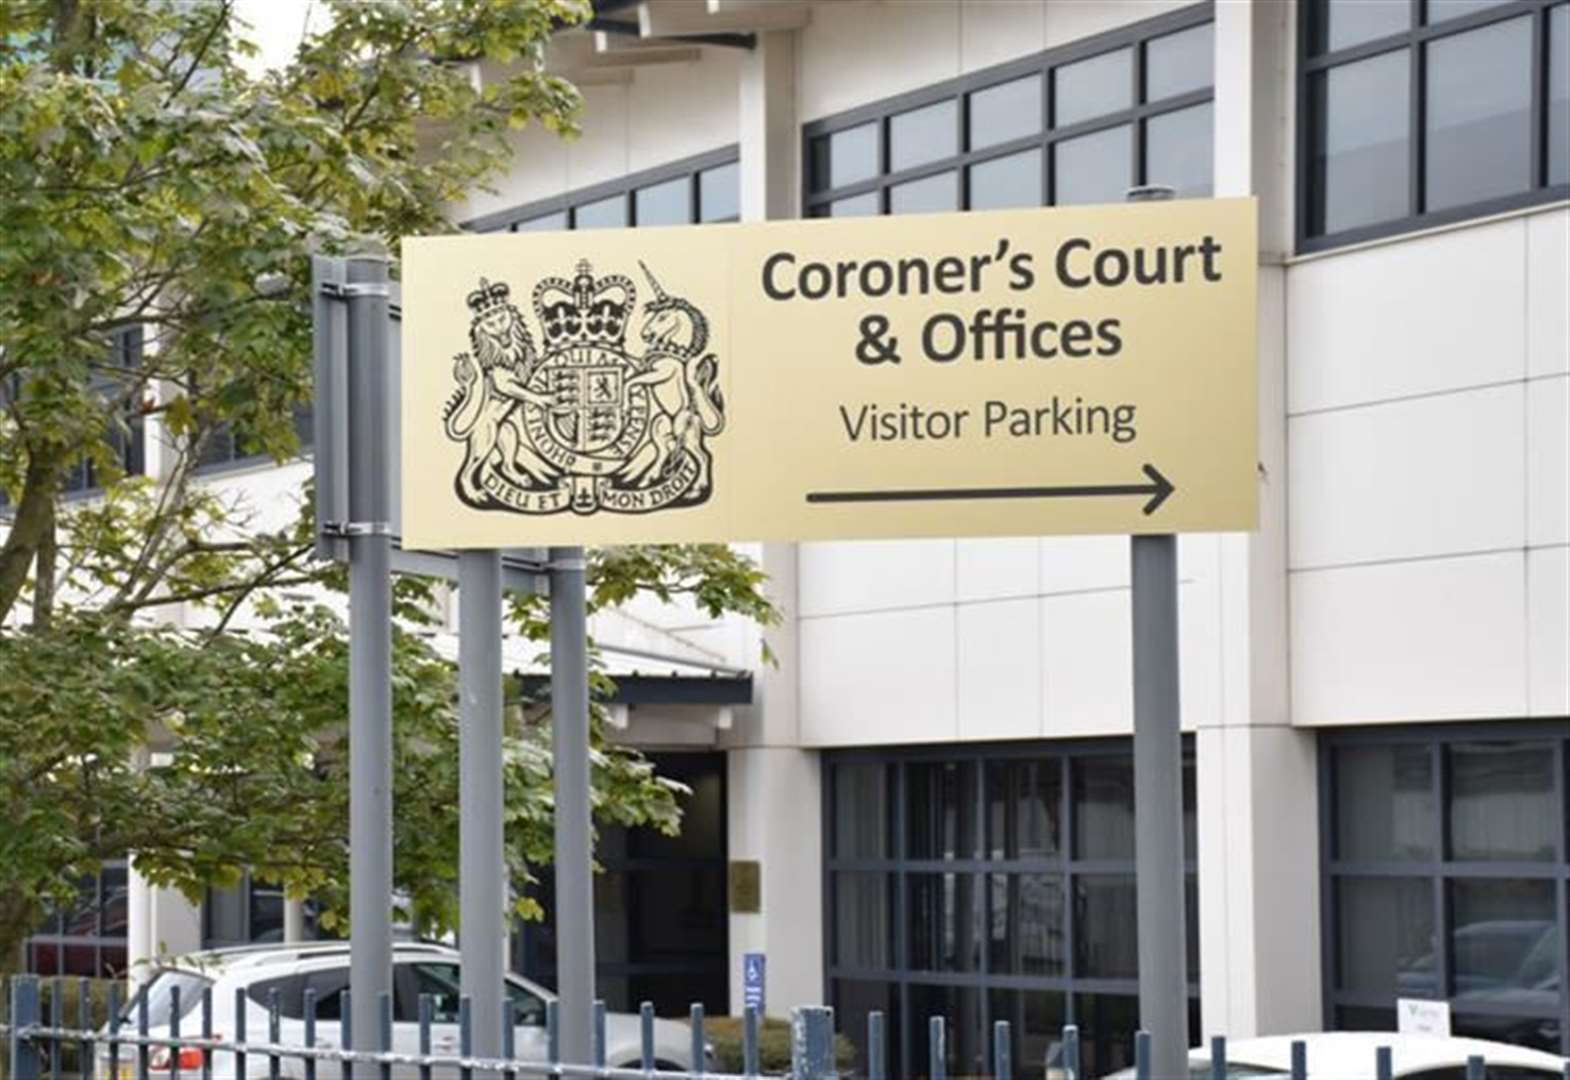 Inquest told of 'happy and caring' woman, 20